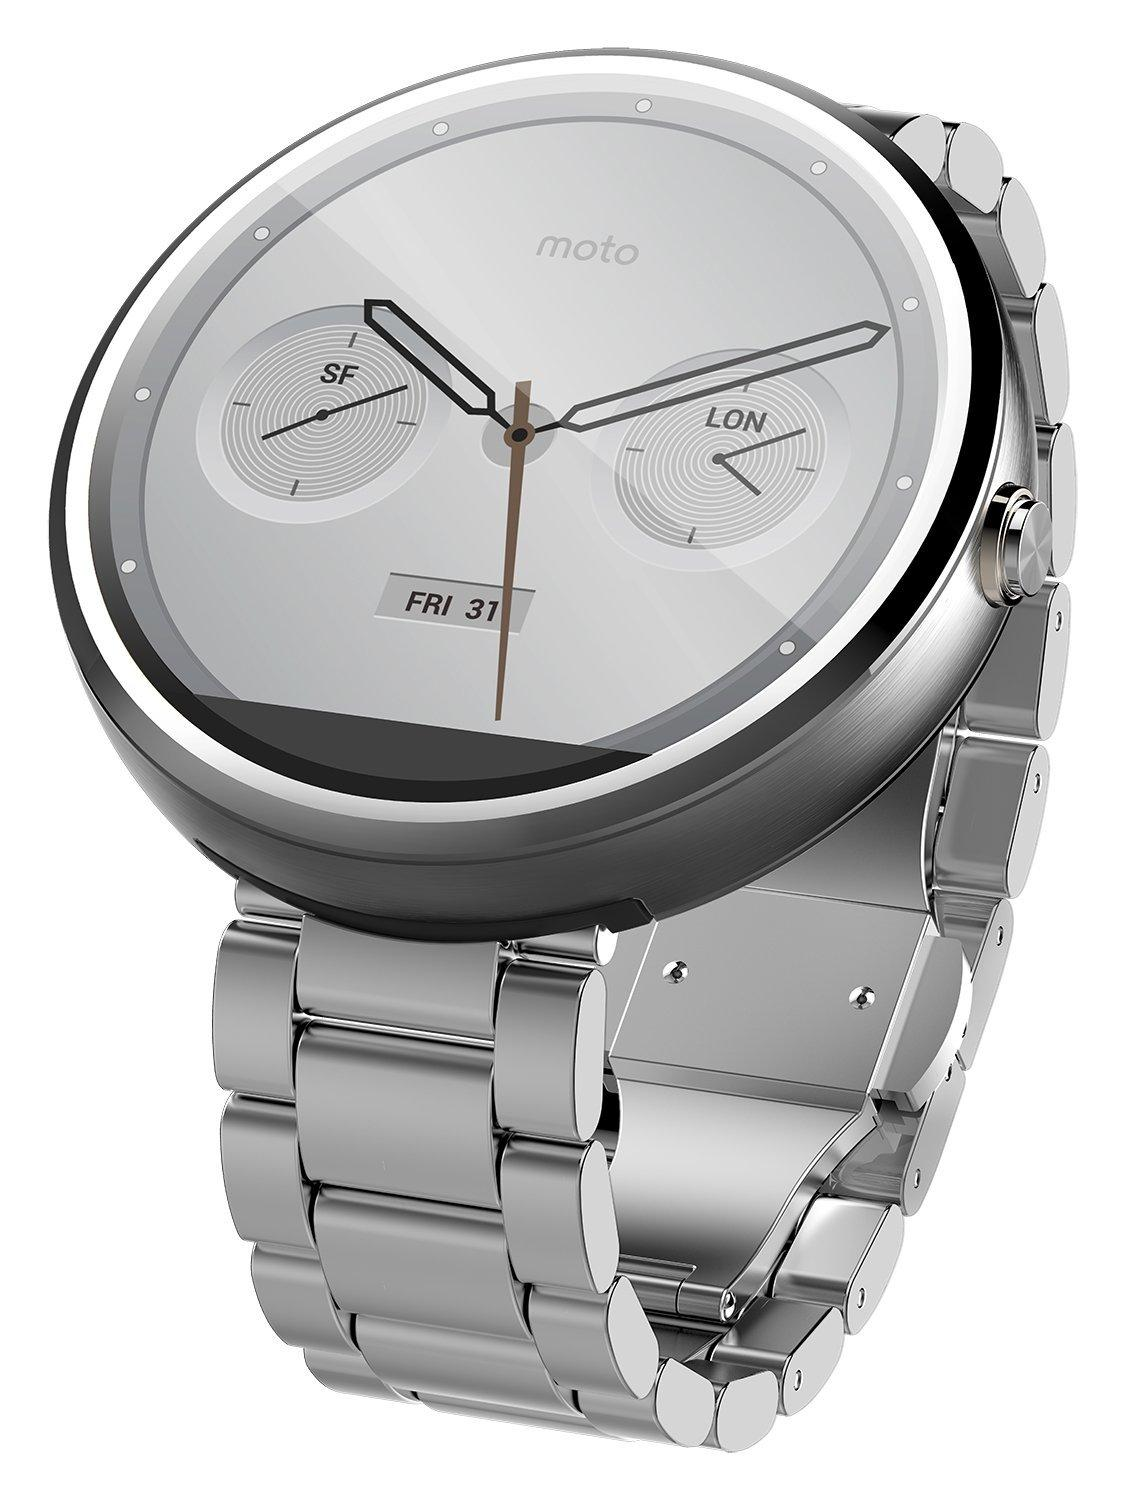 Motorola Mobility Moto 360 Androidwear Smartwatch - Natural Metal - 18mm